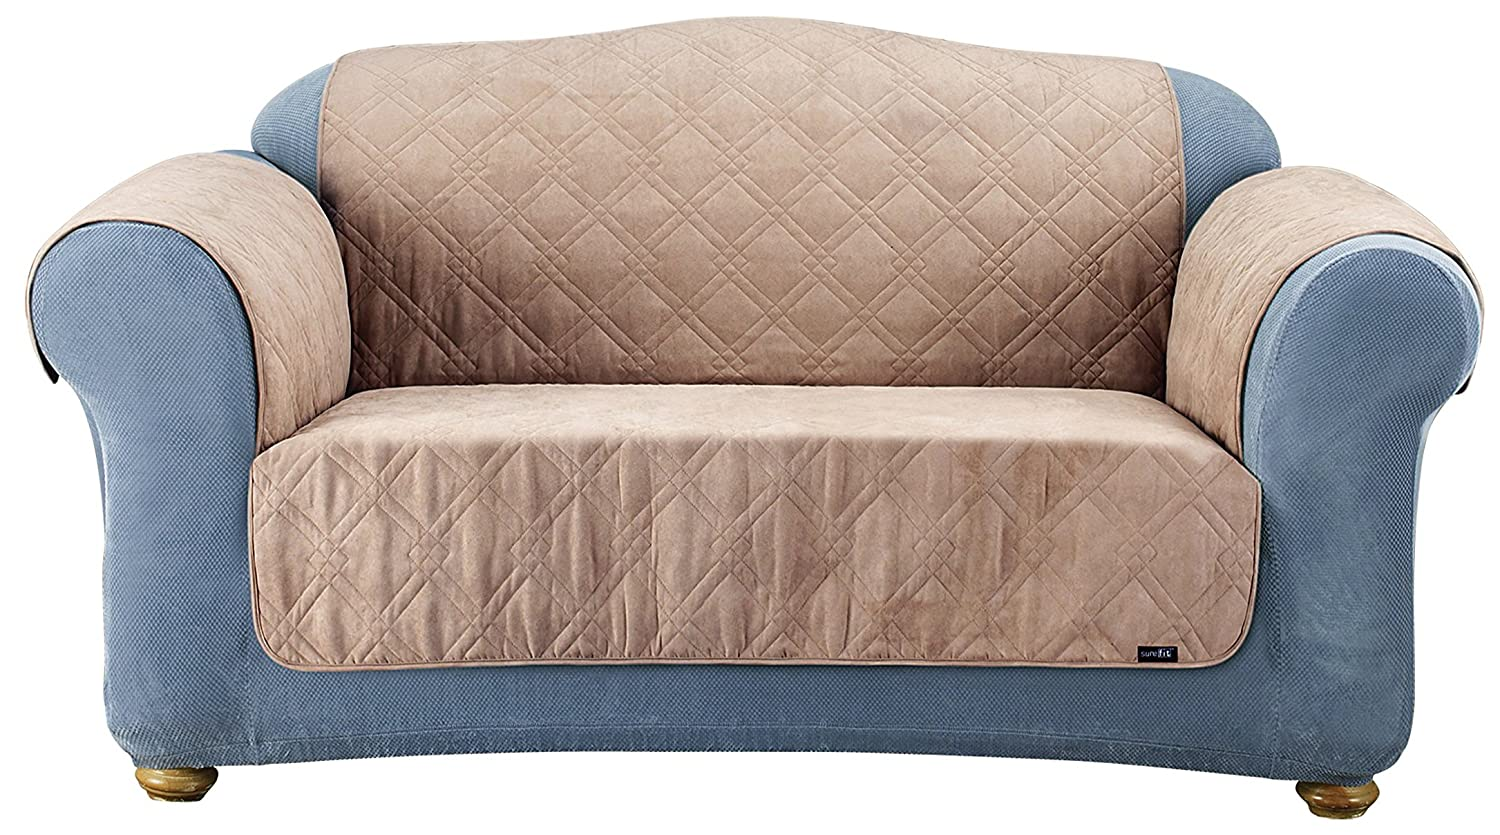 couch fit beyond slipcovers w sure loveseat covers h surefit engaging and sofa lovely cover furniture crop bed bath jpg stretch